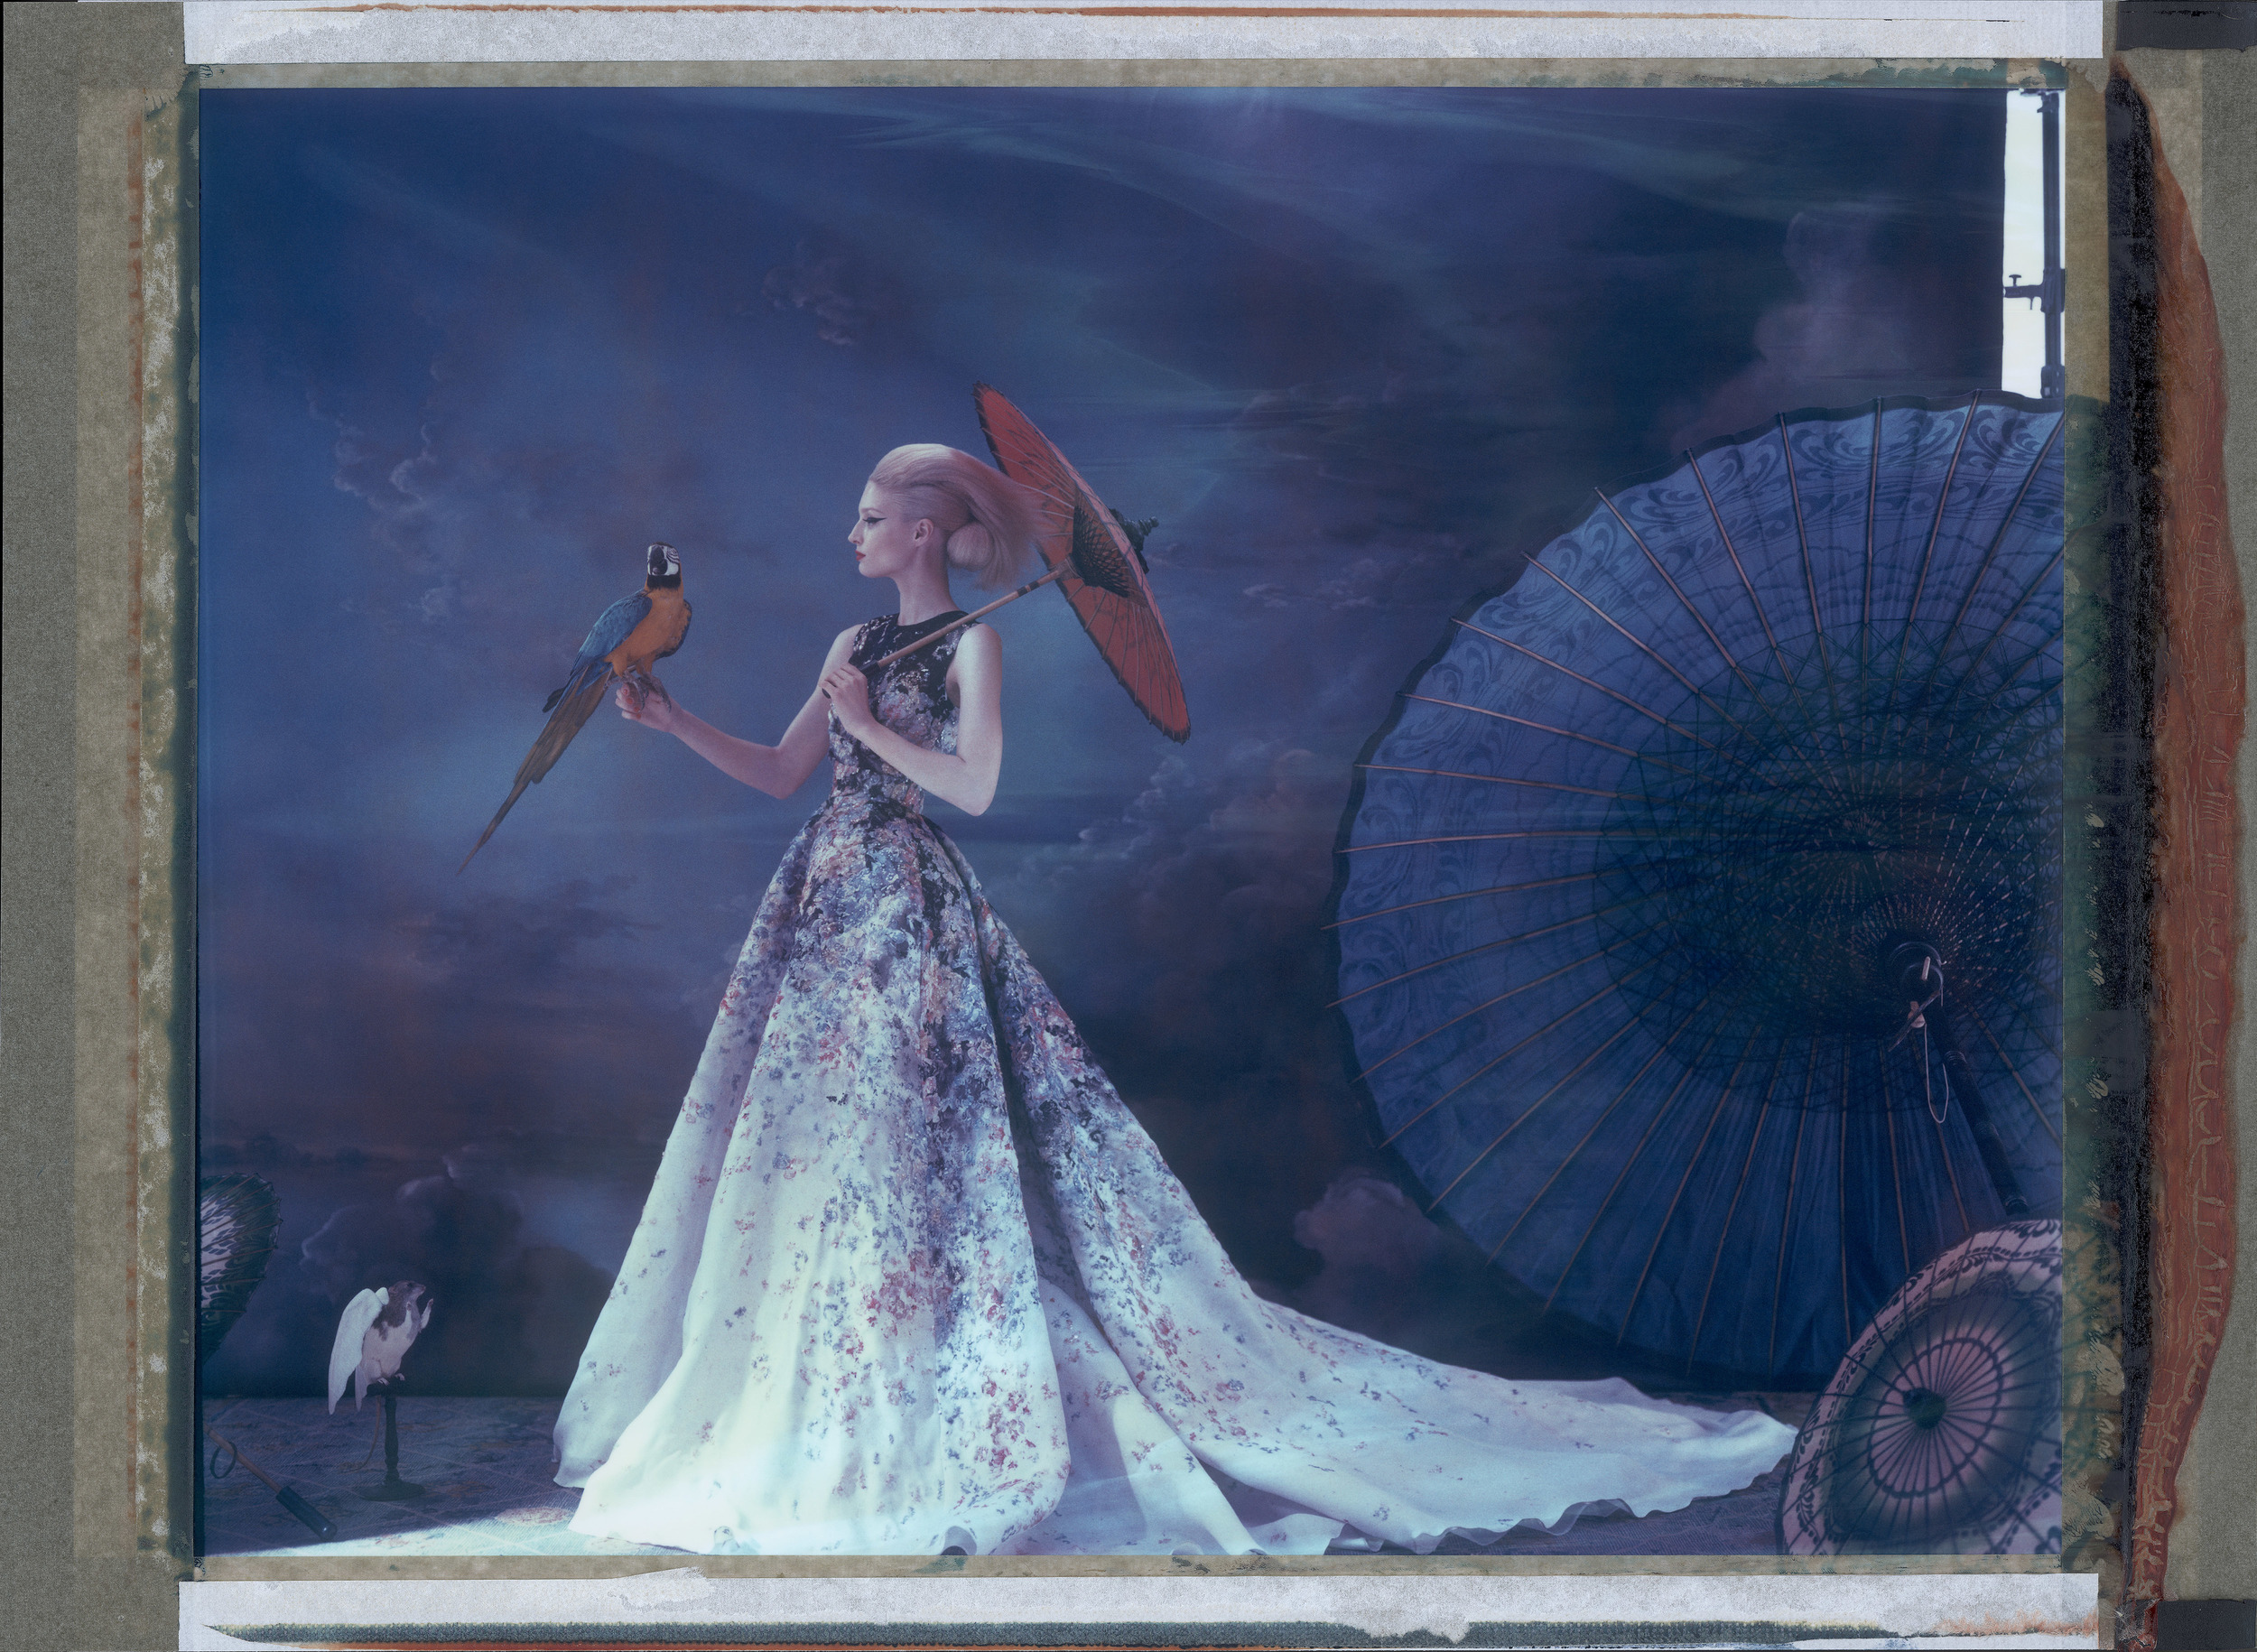 L'ARCHE DE NOÉ XXXIII - ELIE SAAB, HAUTE COUTURE   SUMMER 2014, 2014.   Chromogenic print from original polaroid, 32 x 43 inches (80 x 110 cm).  ©   Cathleen Naundorf / Courtesy Edwynn Houk Gallery, New York & Zürich